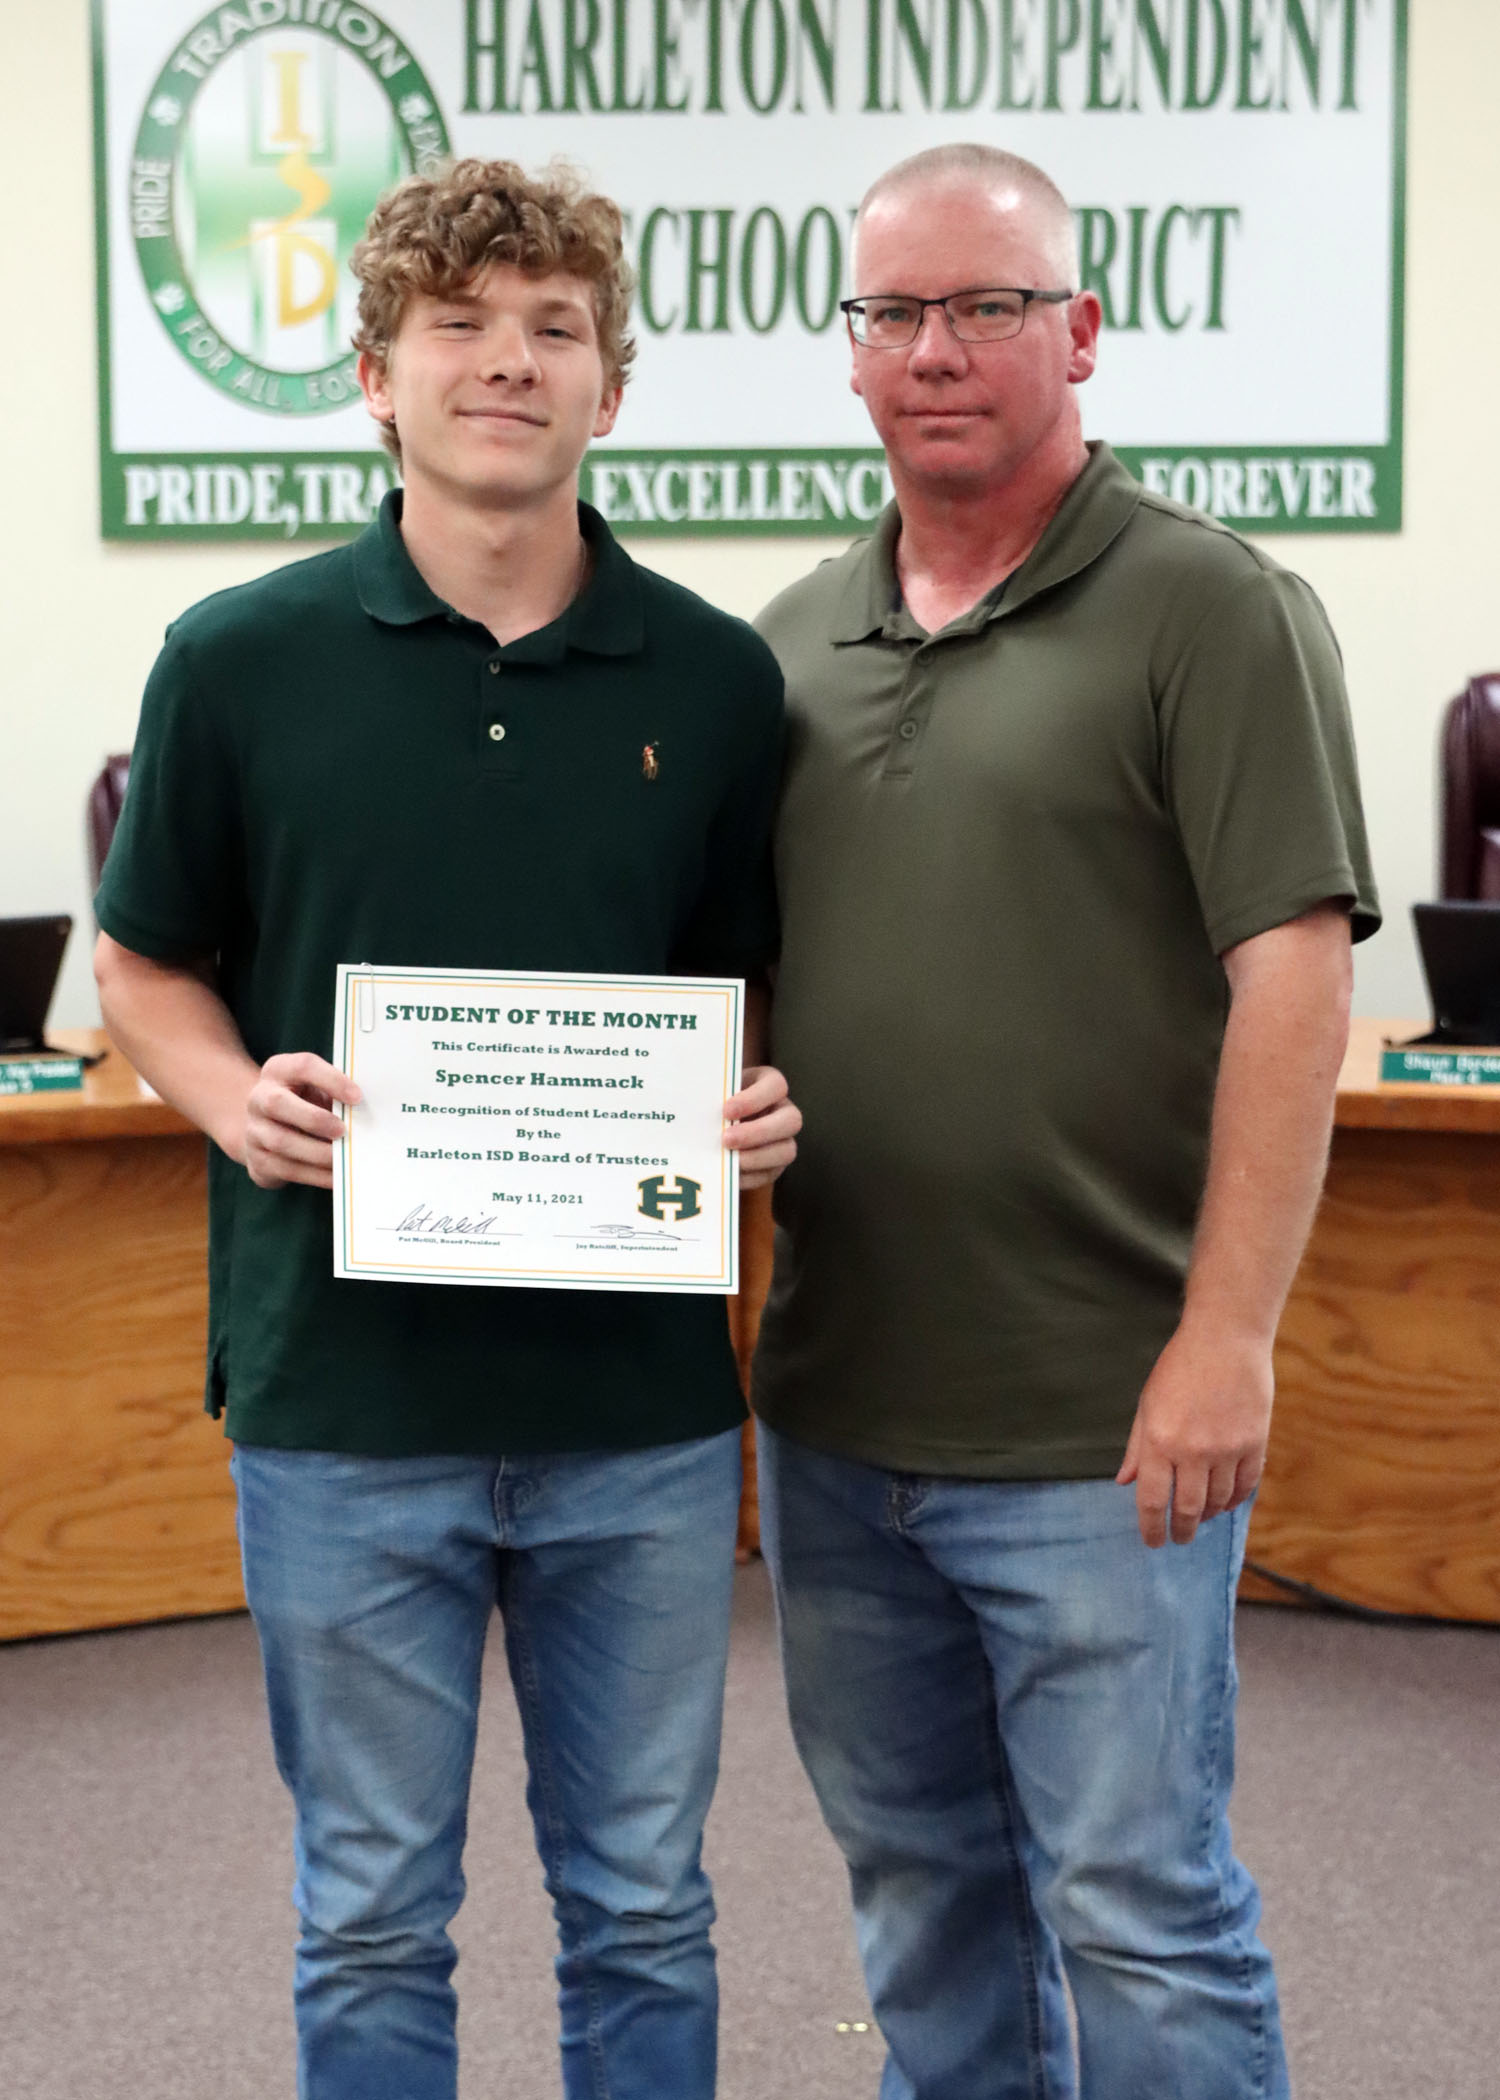 May Student of the Month Spencer Hammack!